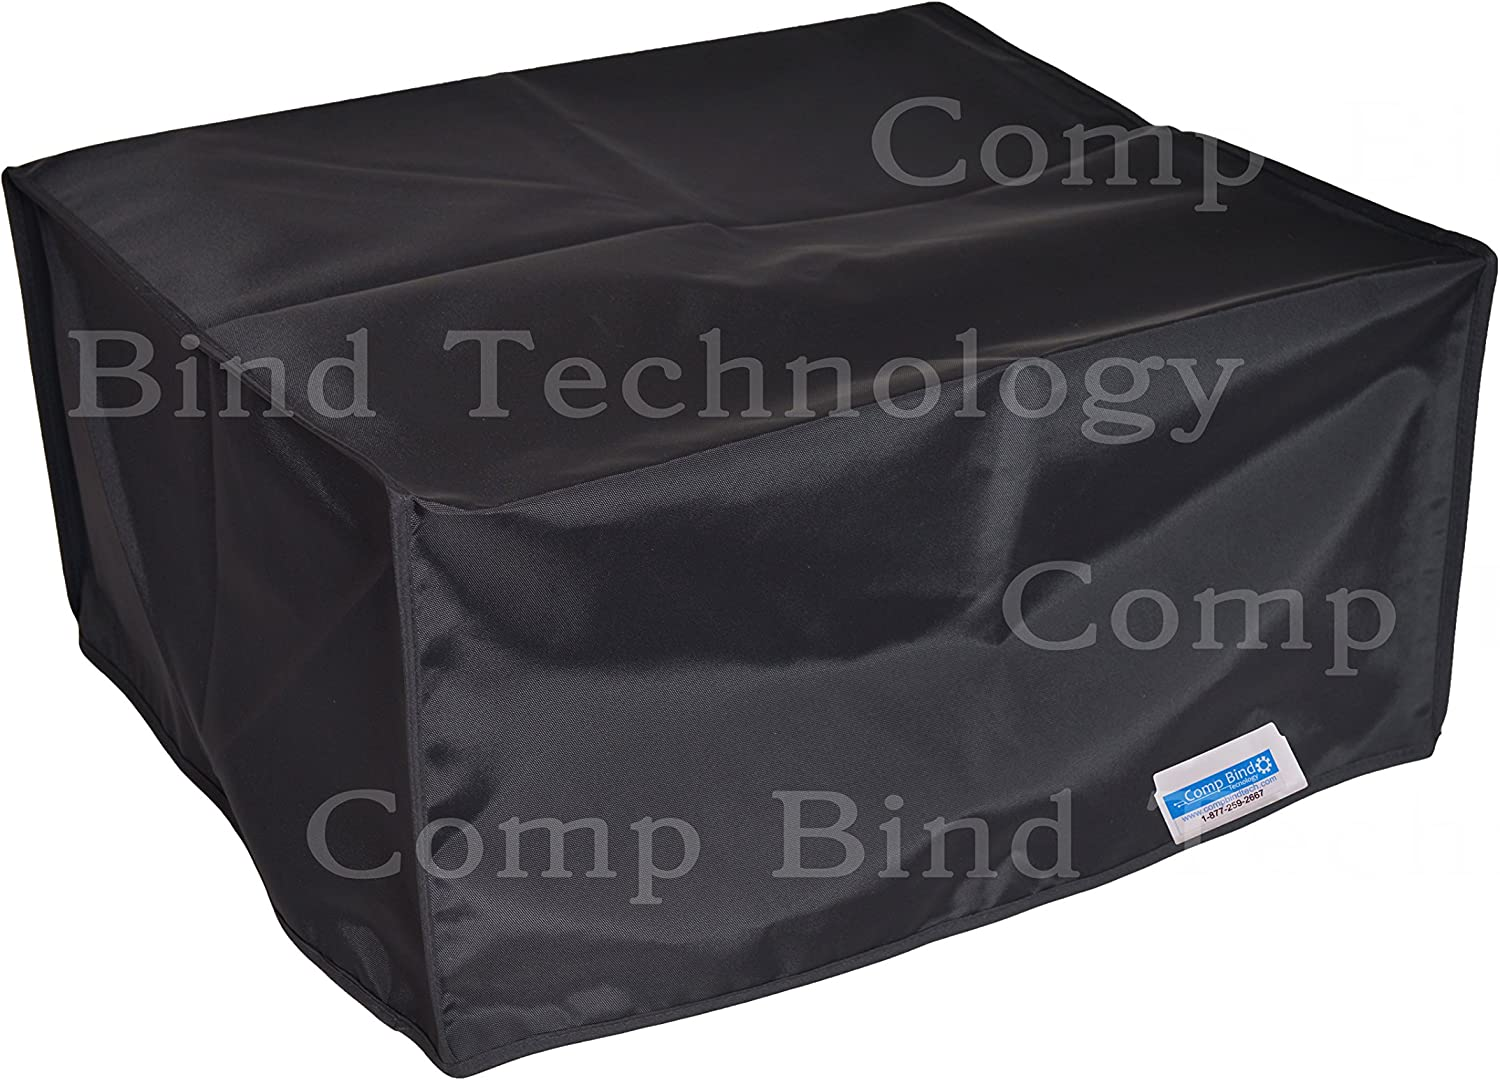 Comp Bind Technology Printer Dust Cover for HP OfficeJet 7612 Wide Format e-All-in-One Printer, Black Nylon, Anti-Static and Double Stitched Dust Cover - Size 24.75''W x 20.25''D x 11.25''H